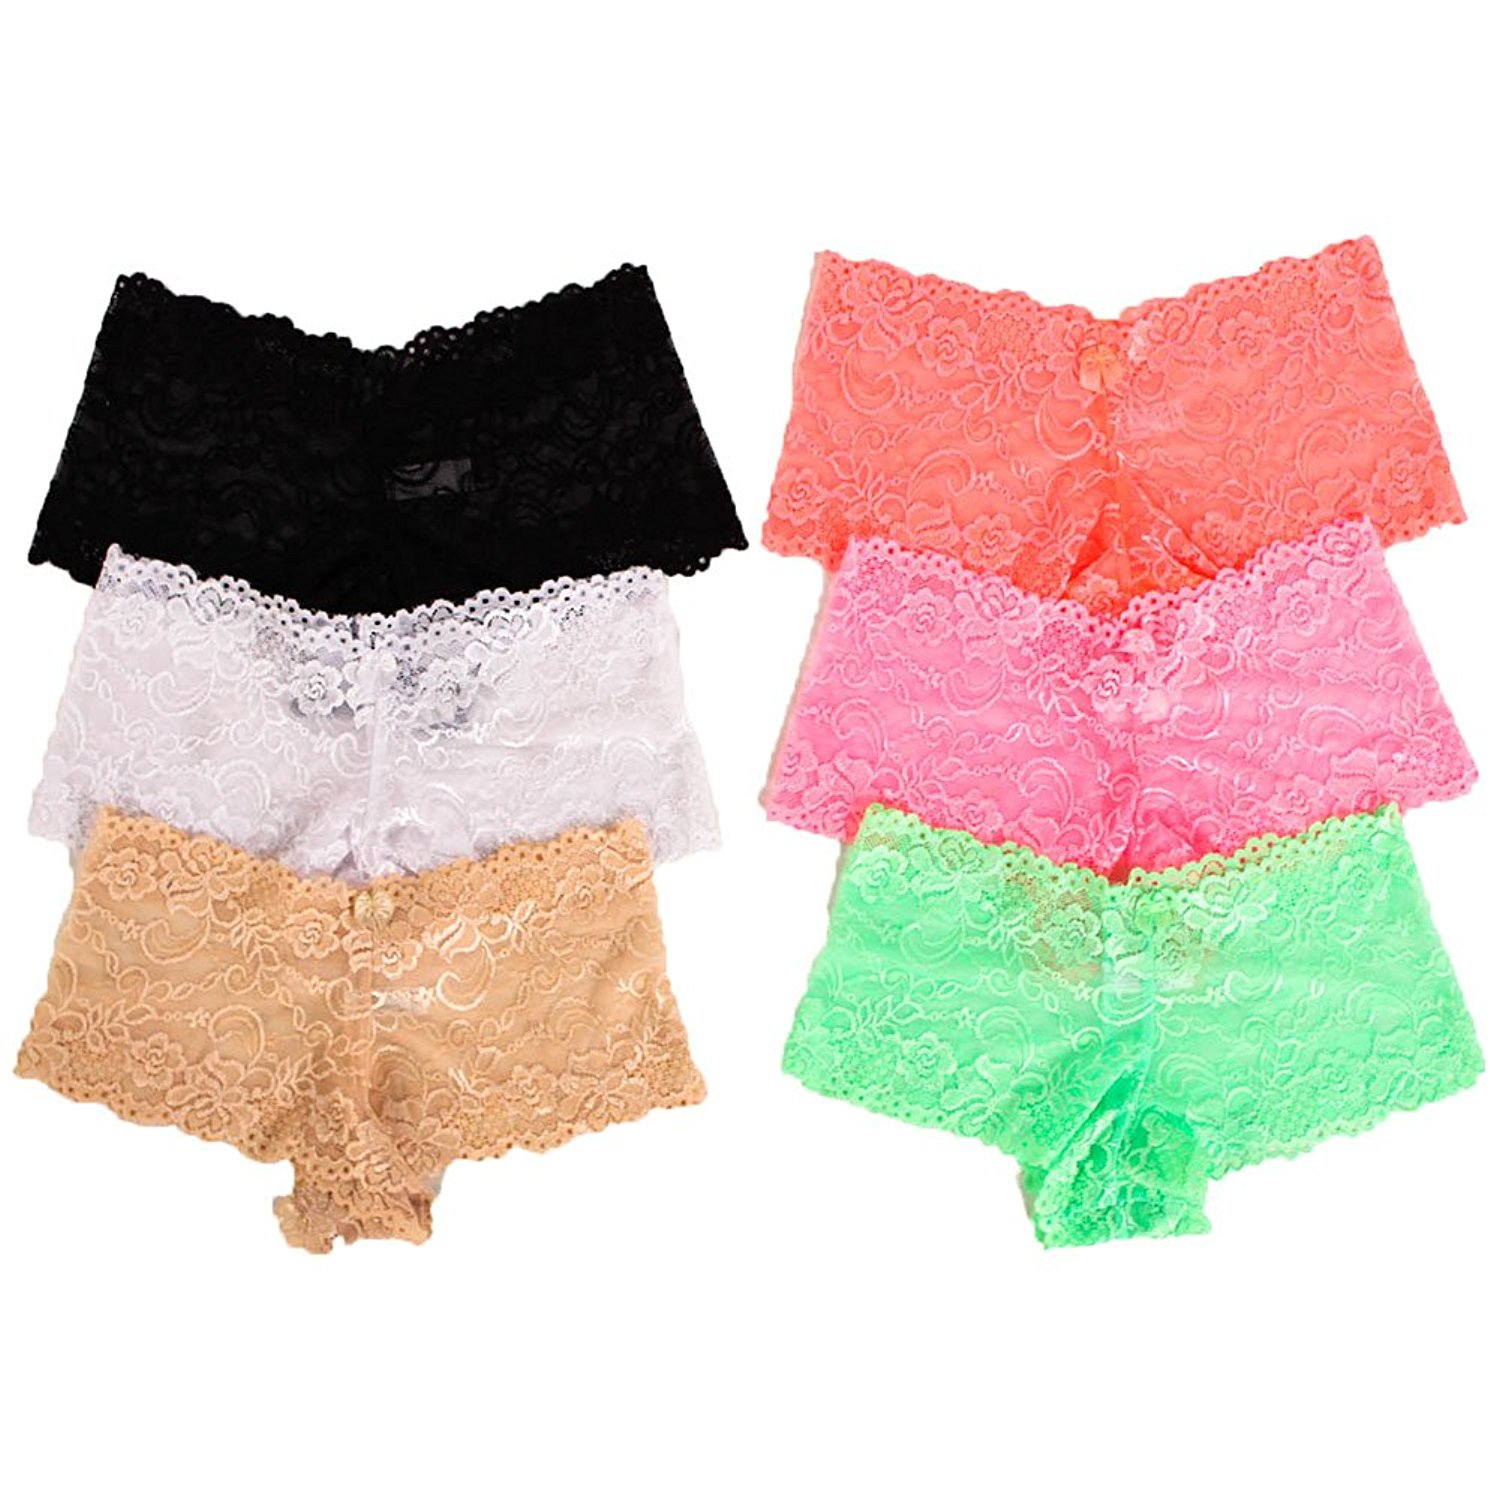 908bc32478 Get Quotations · MaMia 6 Pack of Women s Lace Boyshort Panties-Neon